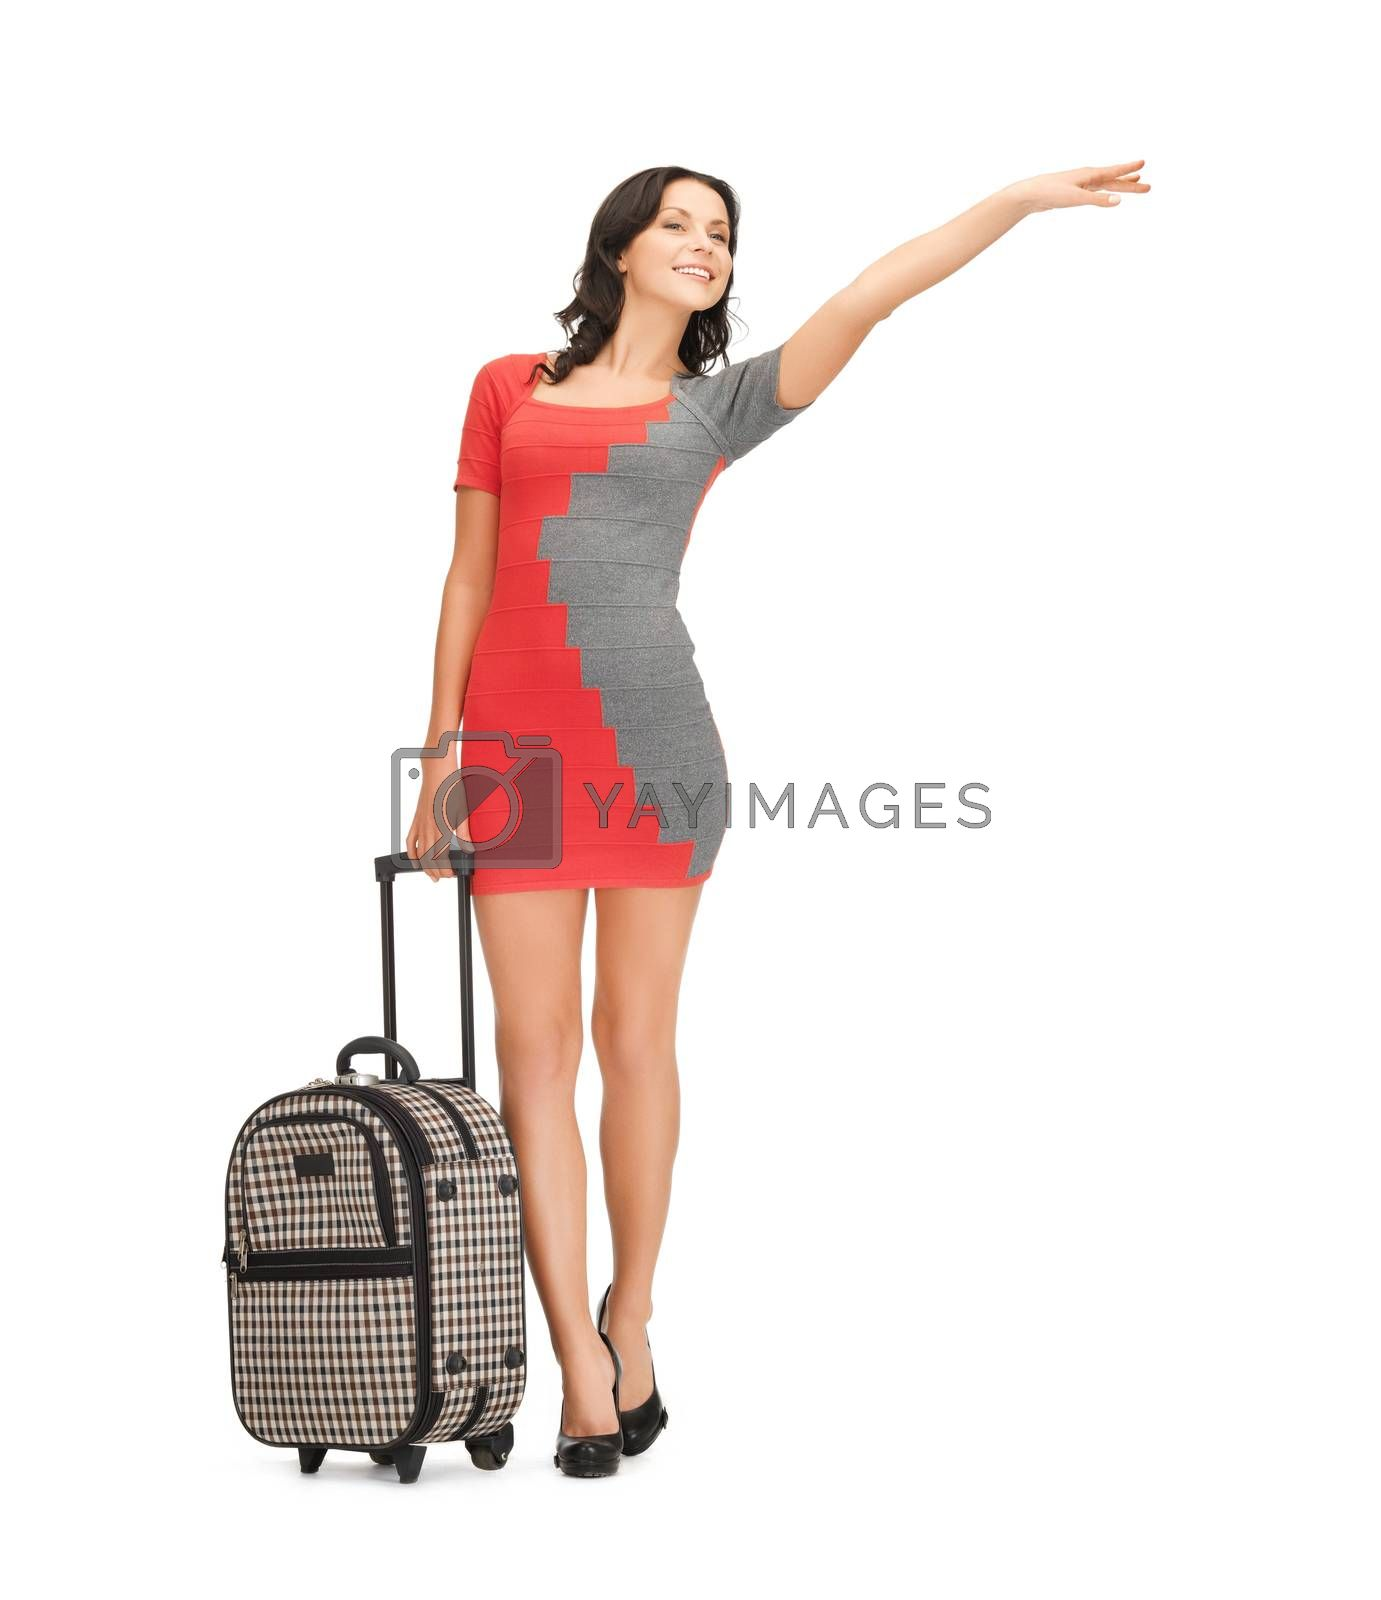 smiling woman with suitcase by dolgachov